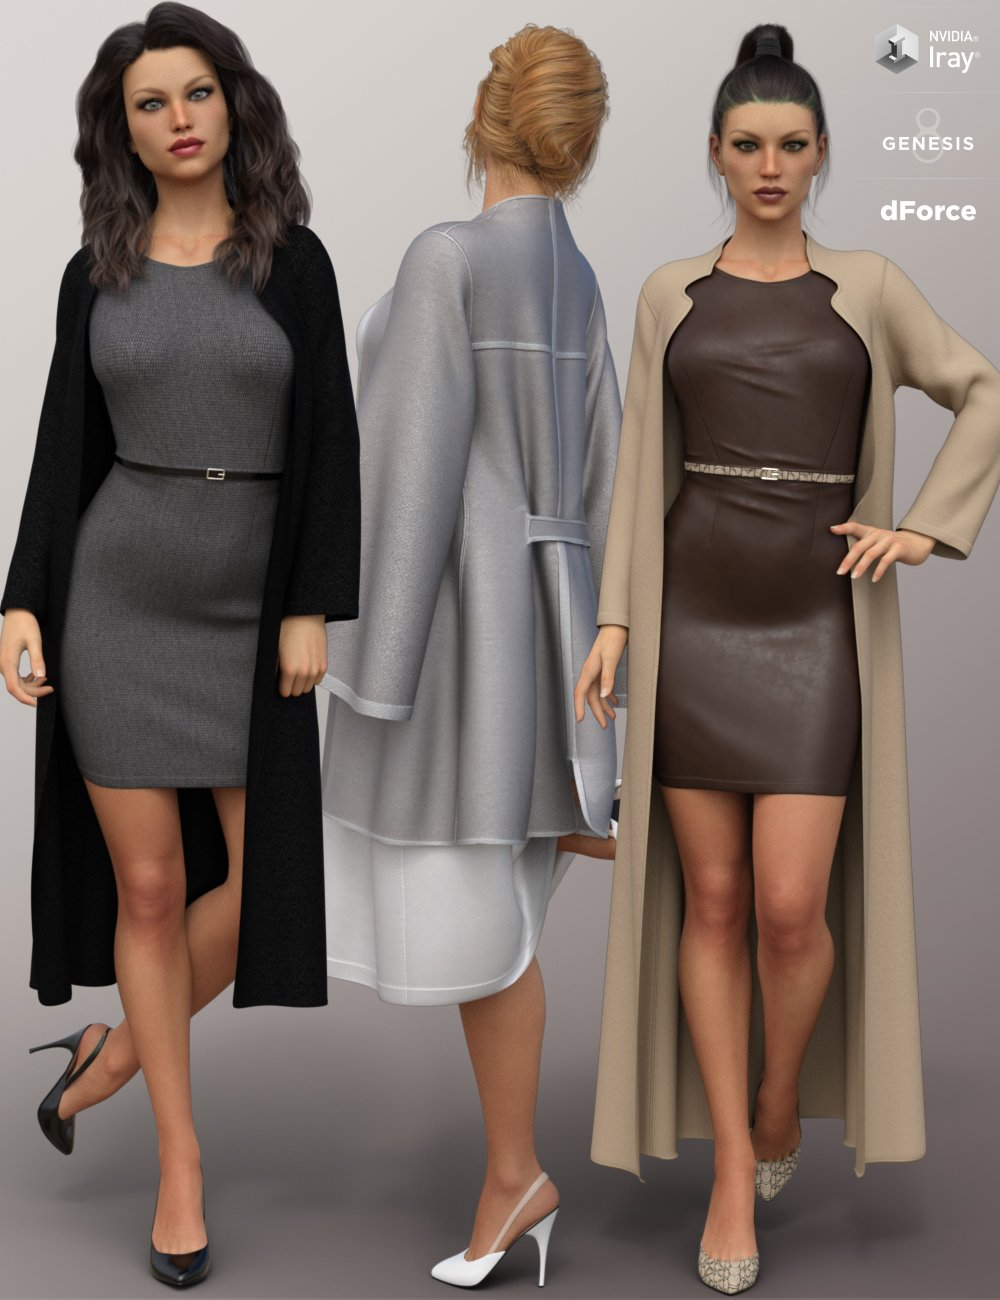 dForce Fashion Sophisticate Outfit for Genesis 8 Female(s) by: Nikisatez, 3D Models by Daz 3D